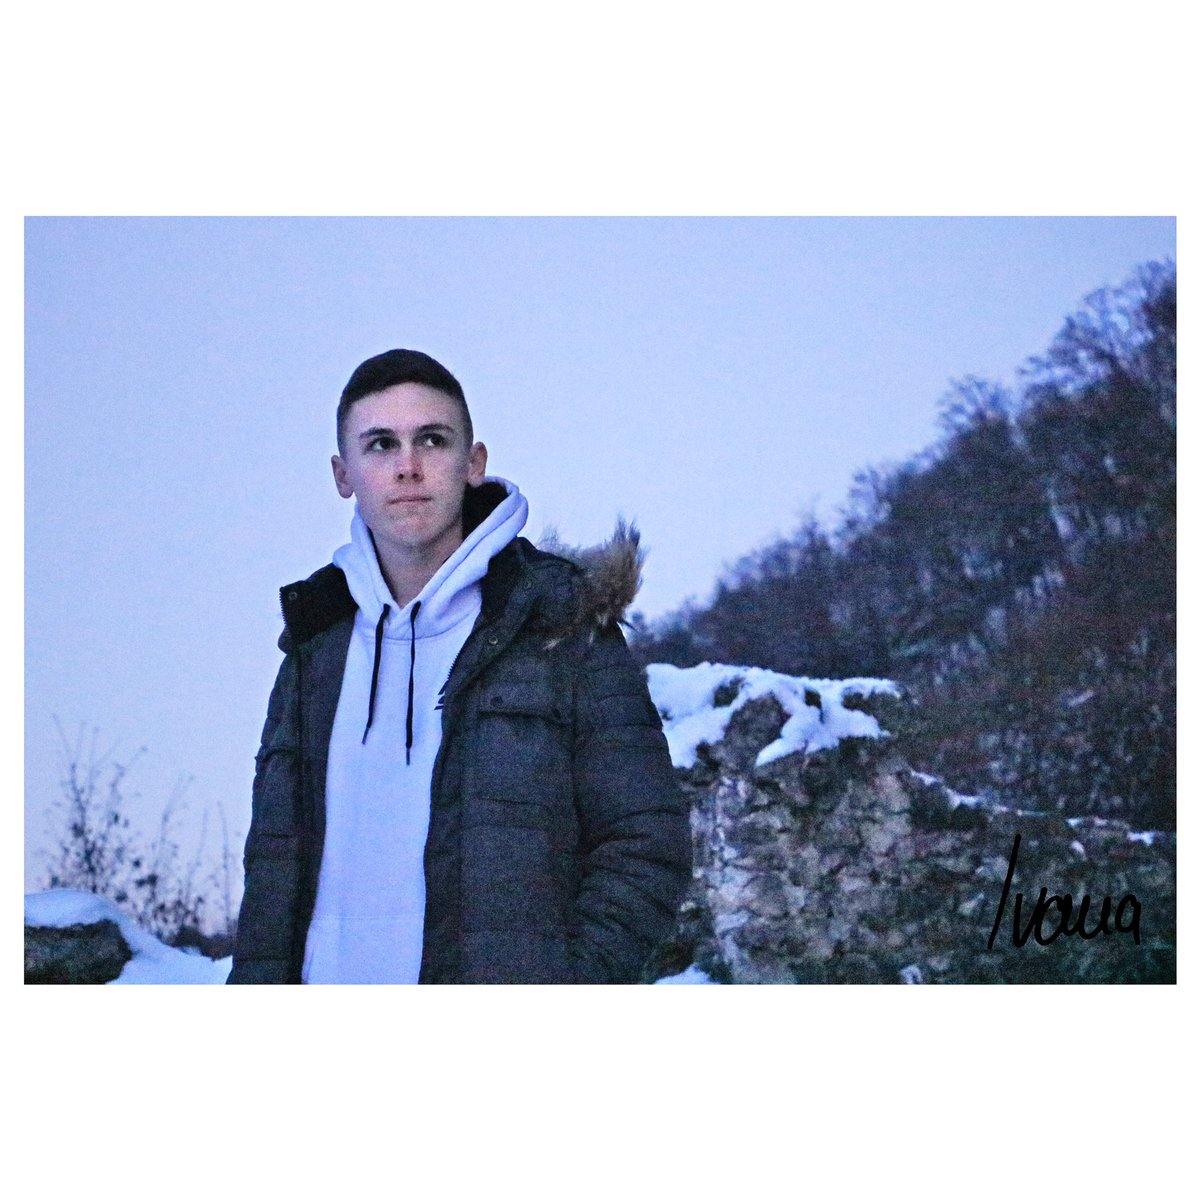 #snow #winter #boy #malemodel #photography #photo #photooftheday #photographylovers #photographer #photoshooting #photogram #portraitpage #portraitphotography #portrait #white #blue #color #colors